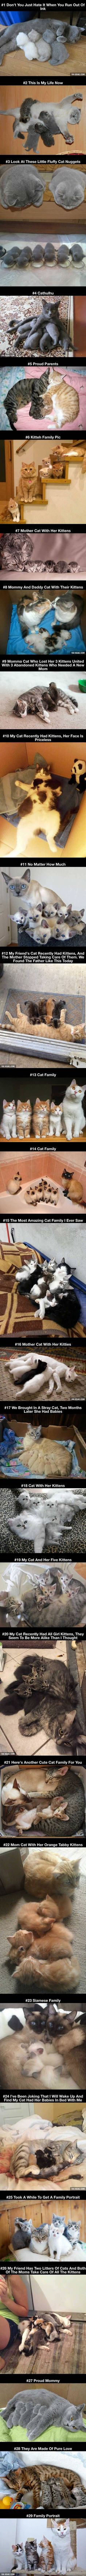 29 Proud Cat Mommies With Their Kittens